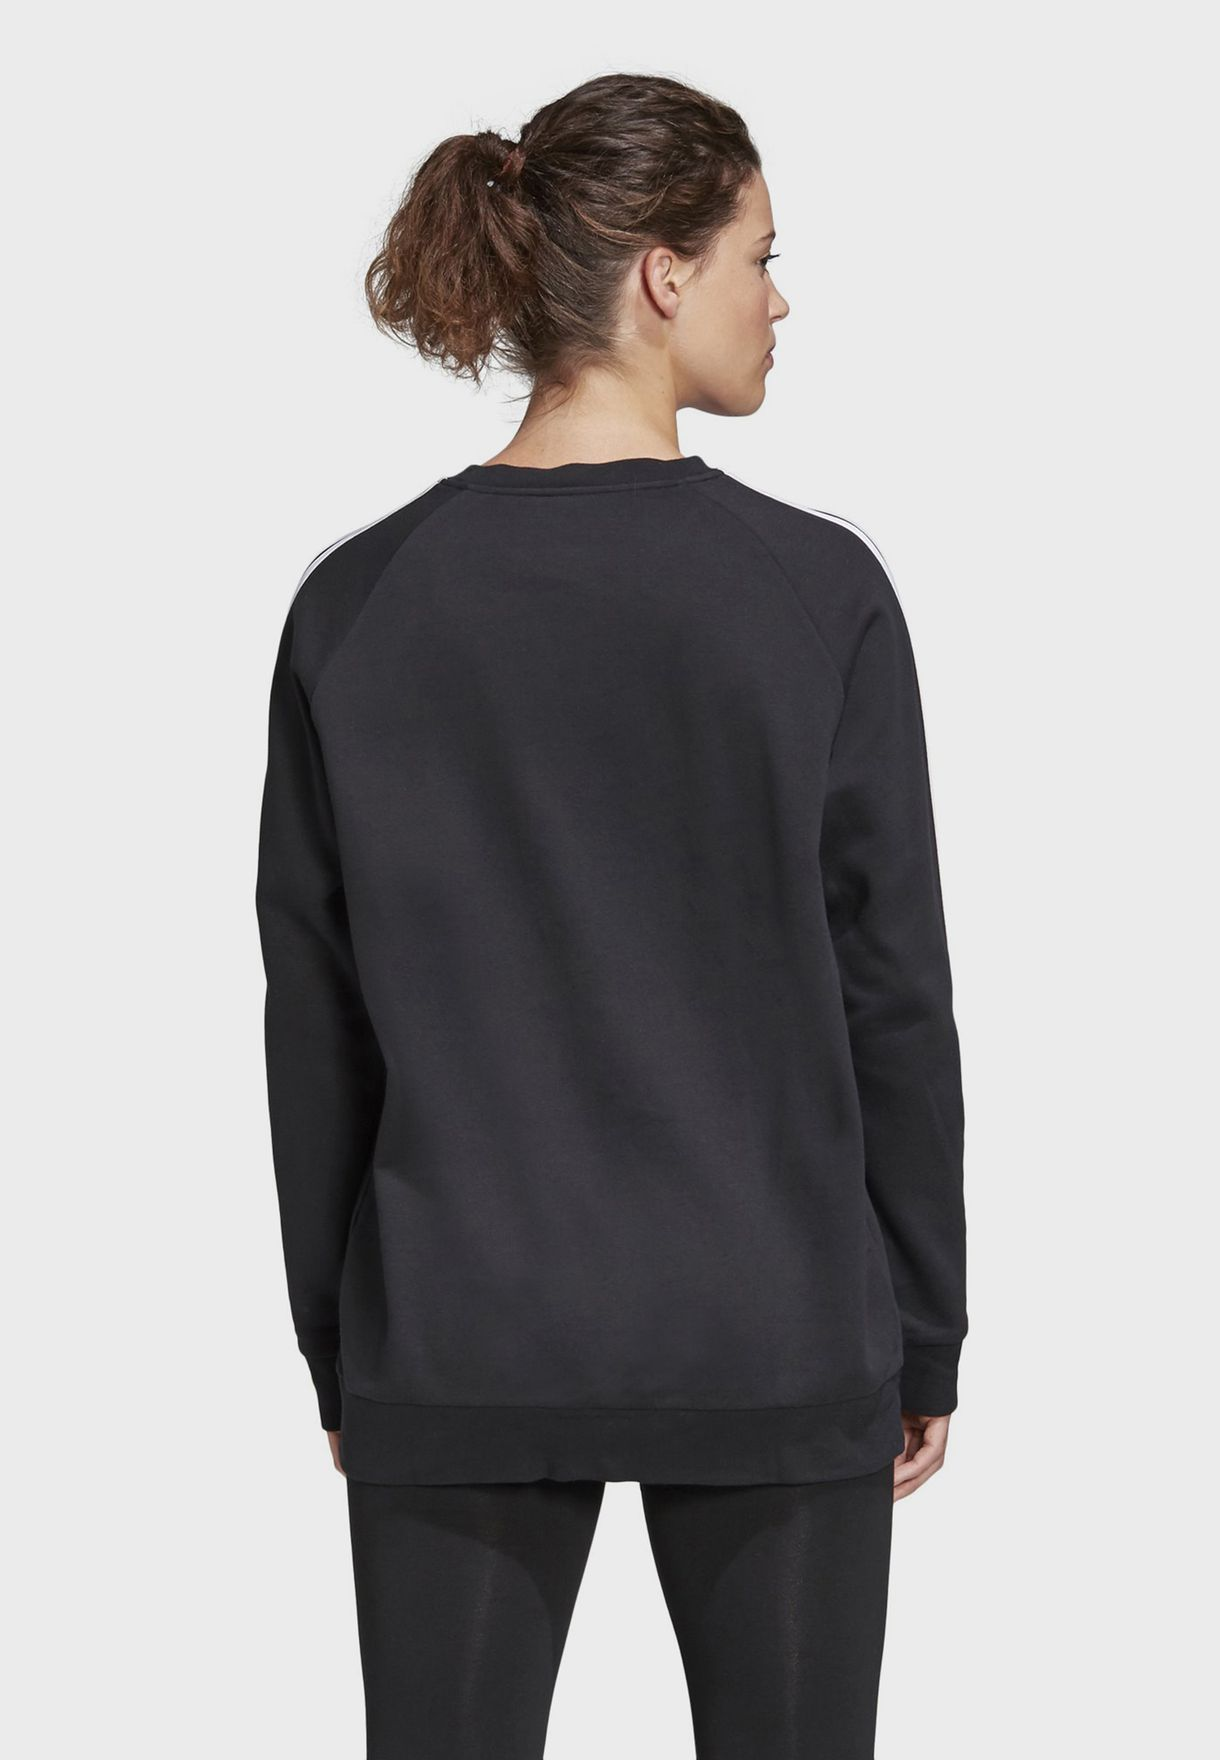 Essential Boyfriend Sweatshirt